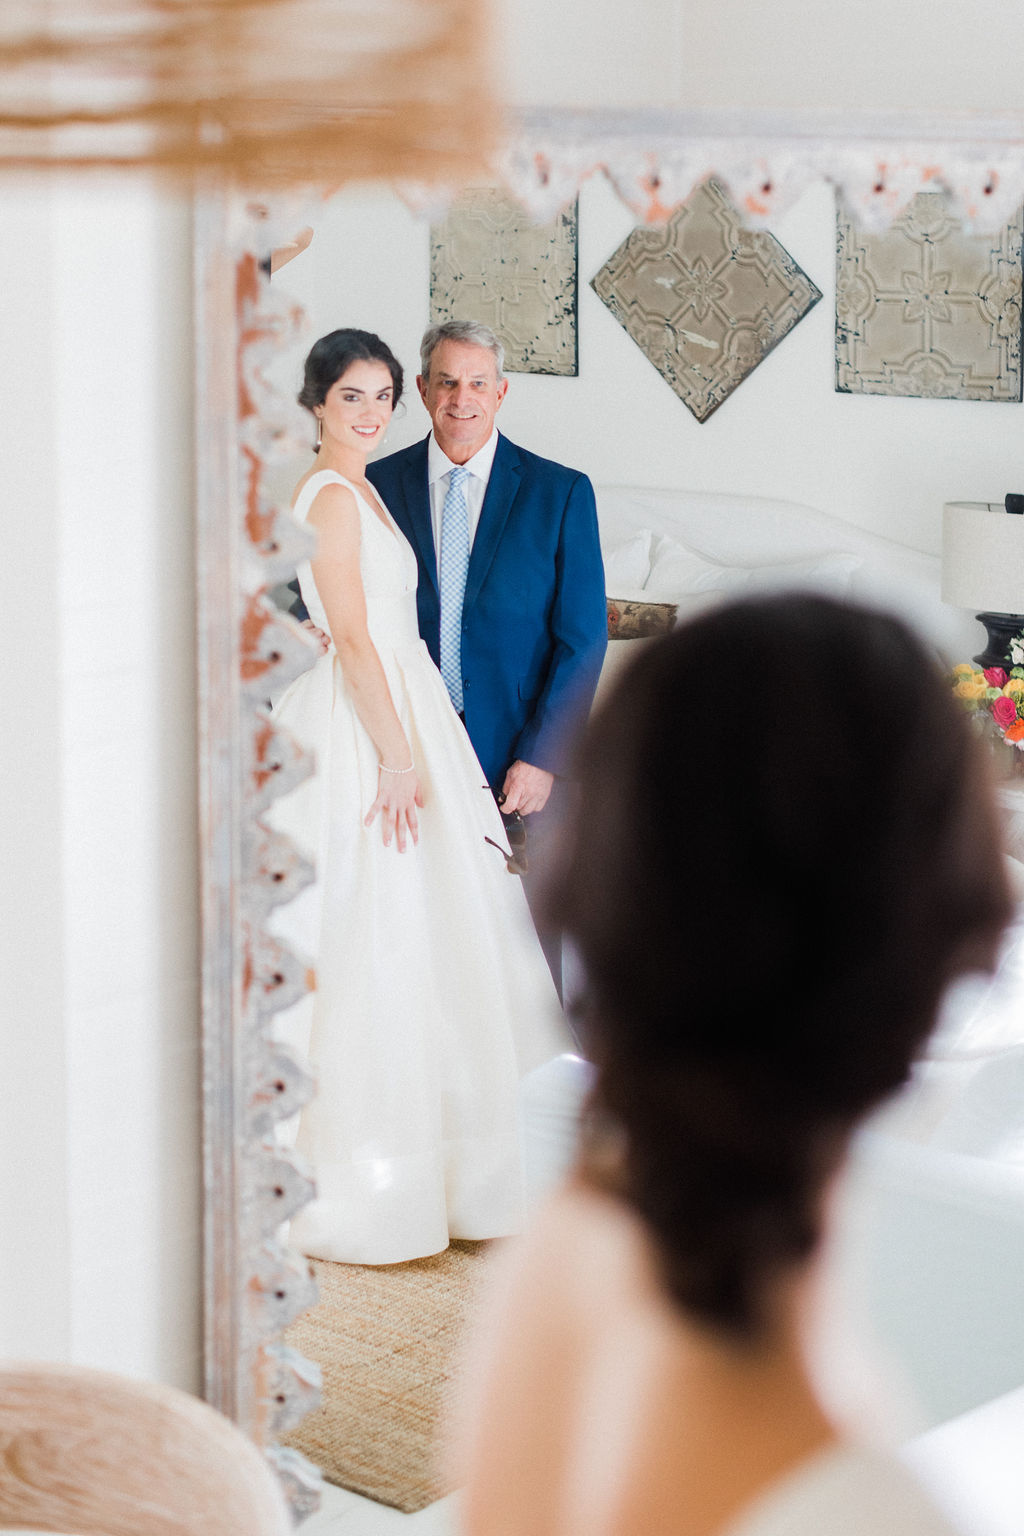 first look with dad wedding day epoch co bonner rhae photography destination wedding coordinator planner austin houston texas